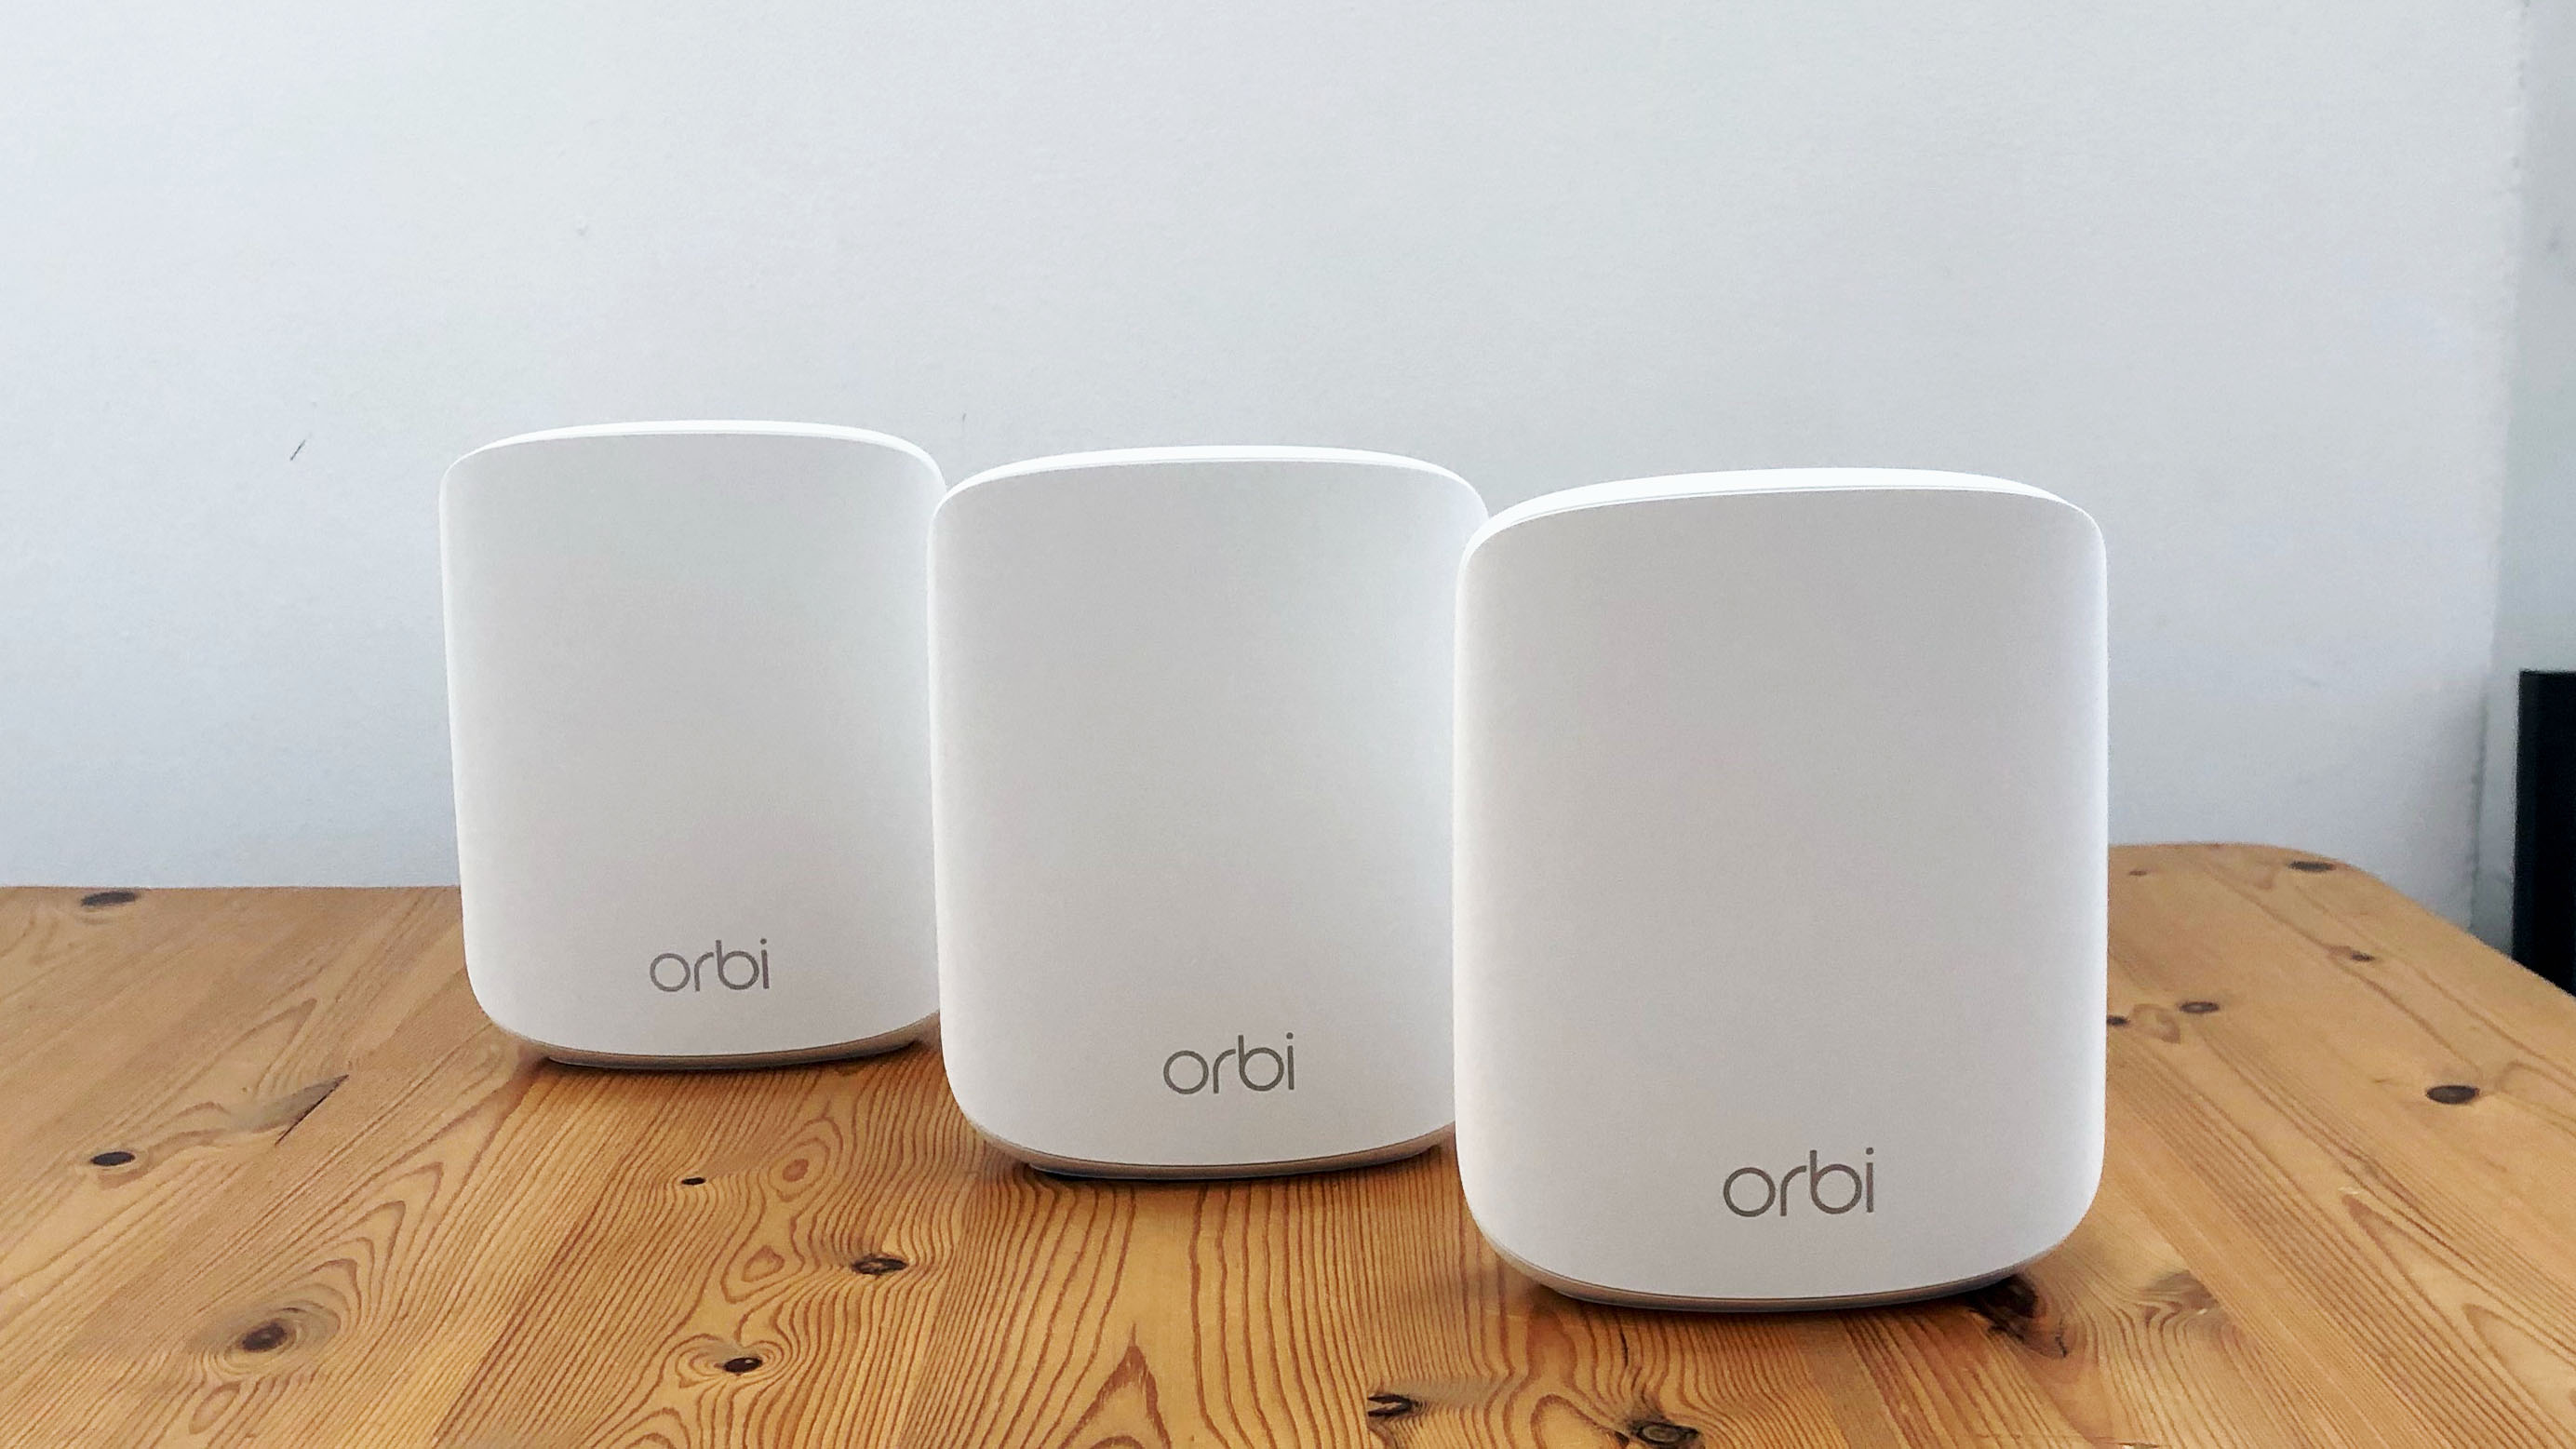 Netgear Orbi RBK353 on a wooden table in front of a white background